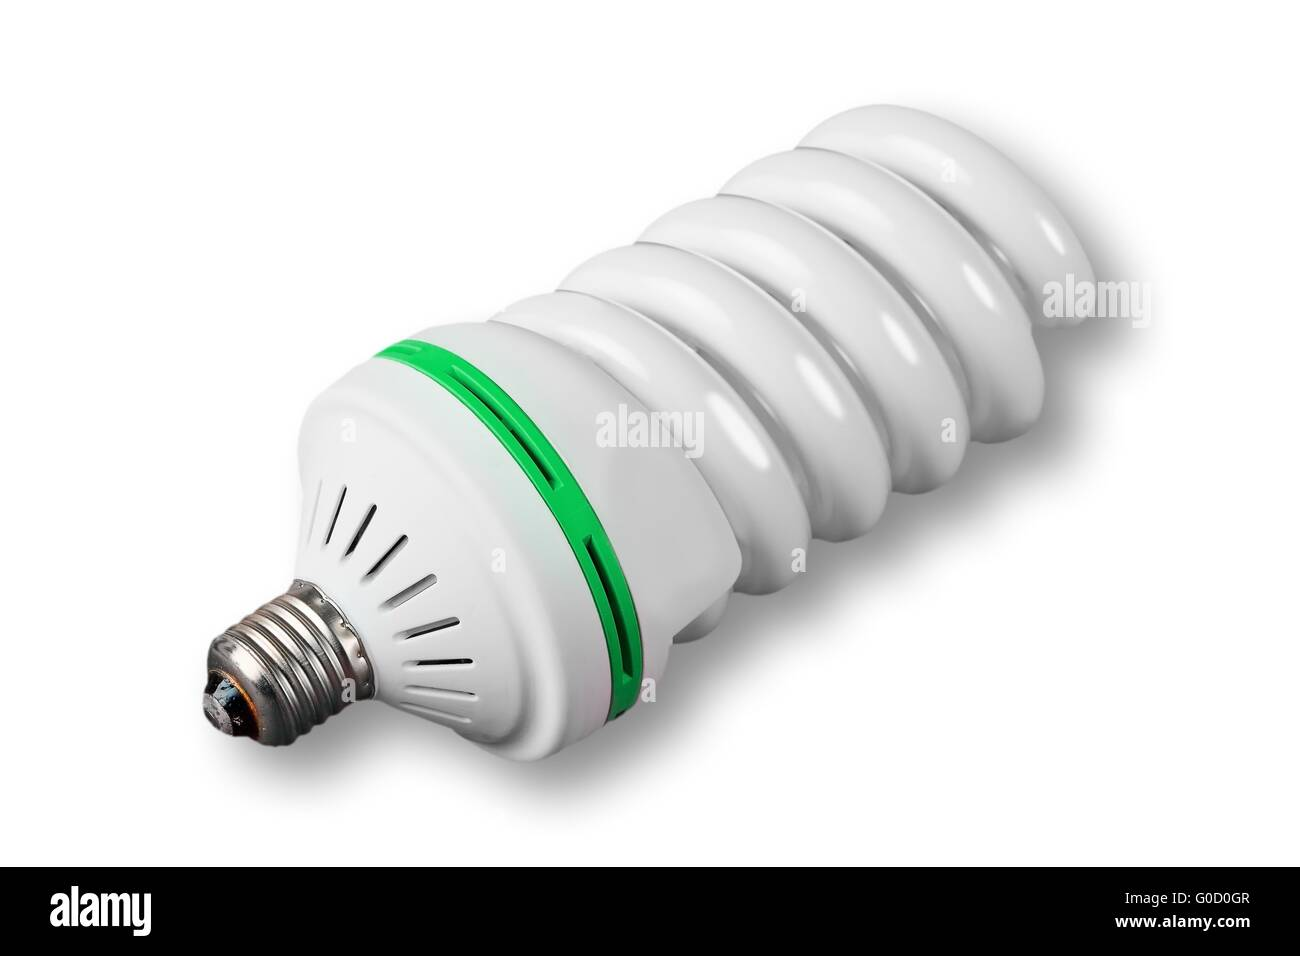 Economic light bulb on white background (green power) - Stock Image